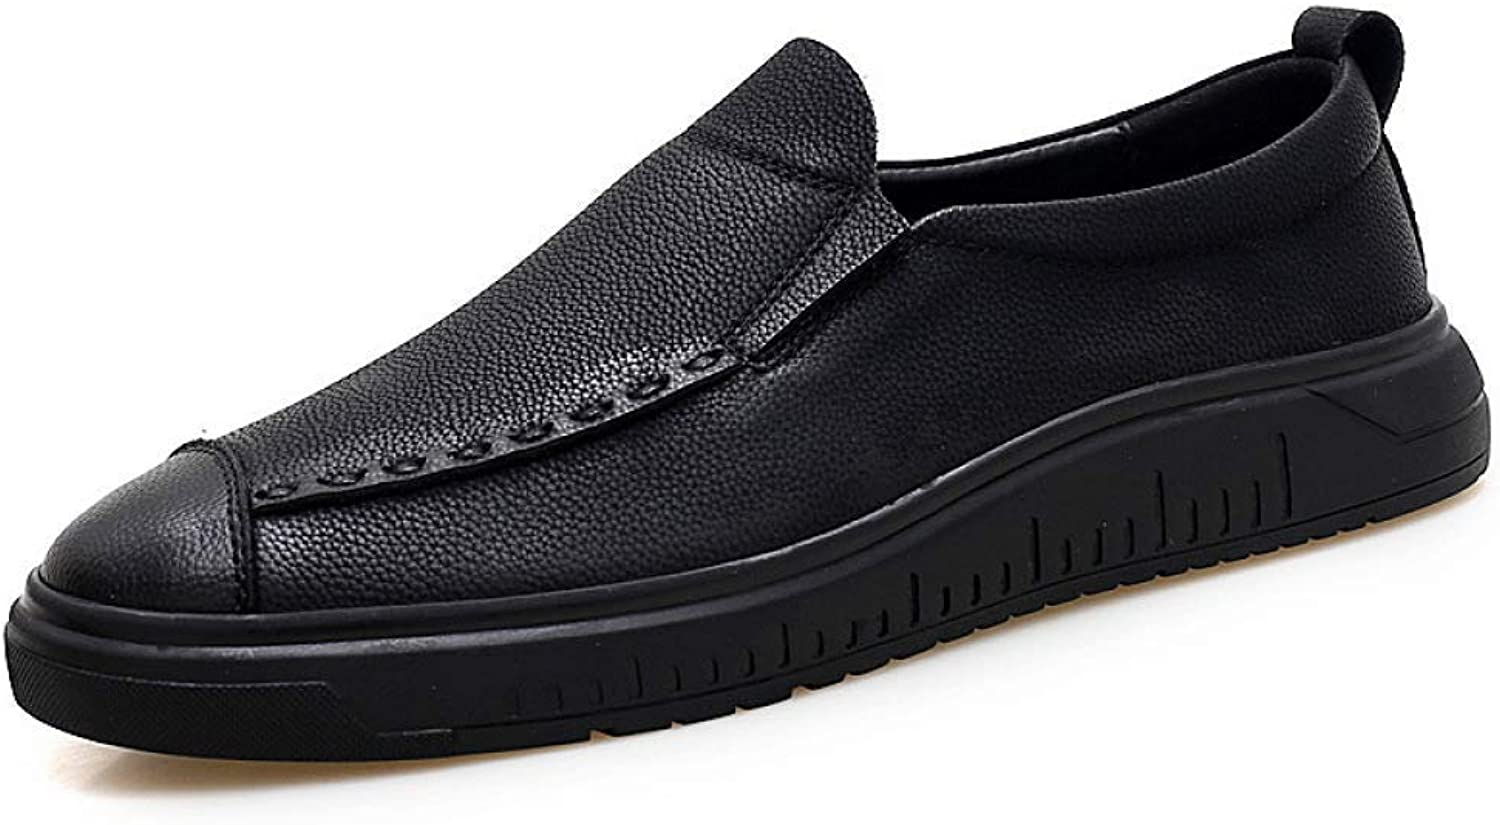 Hhgold Autumn New Invisible Inner shoes, Men's Leather Casual shoes 42,43 (color   Black, Size   UK 6.5)